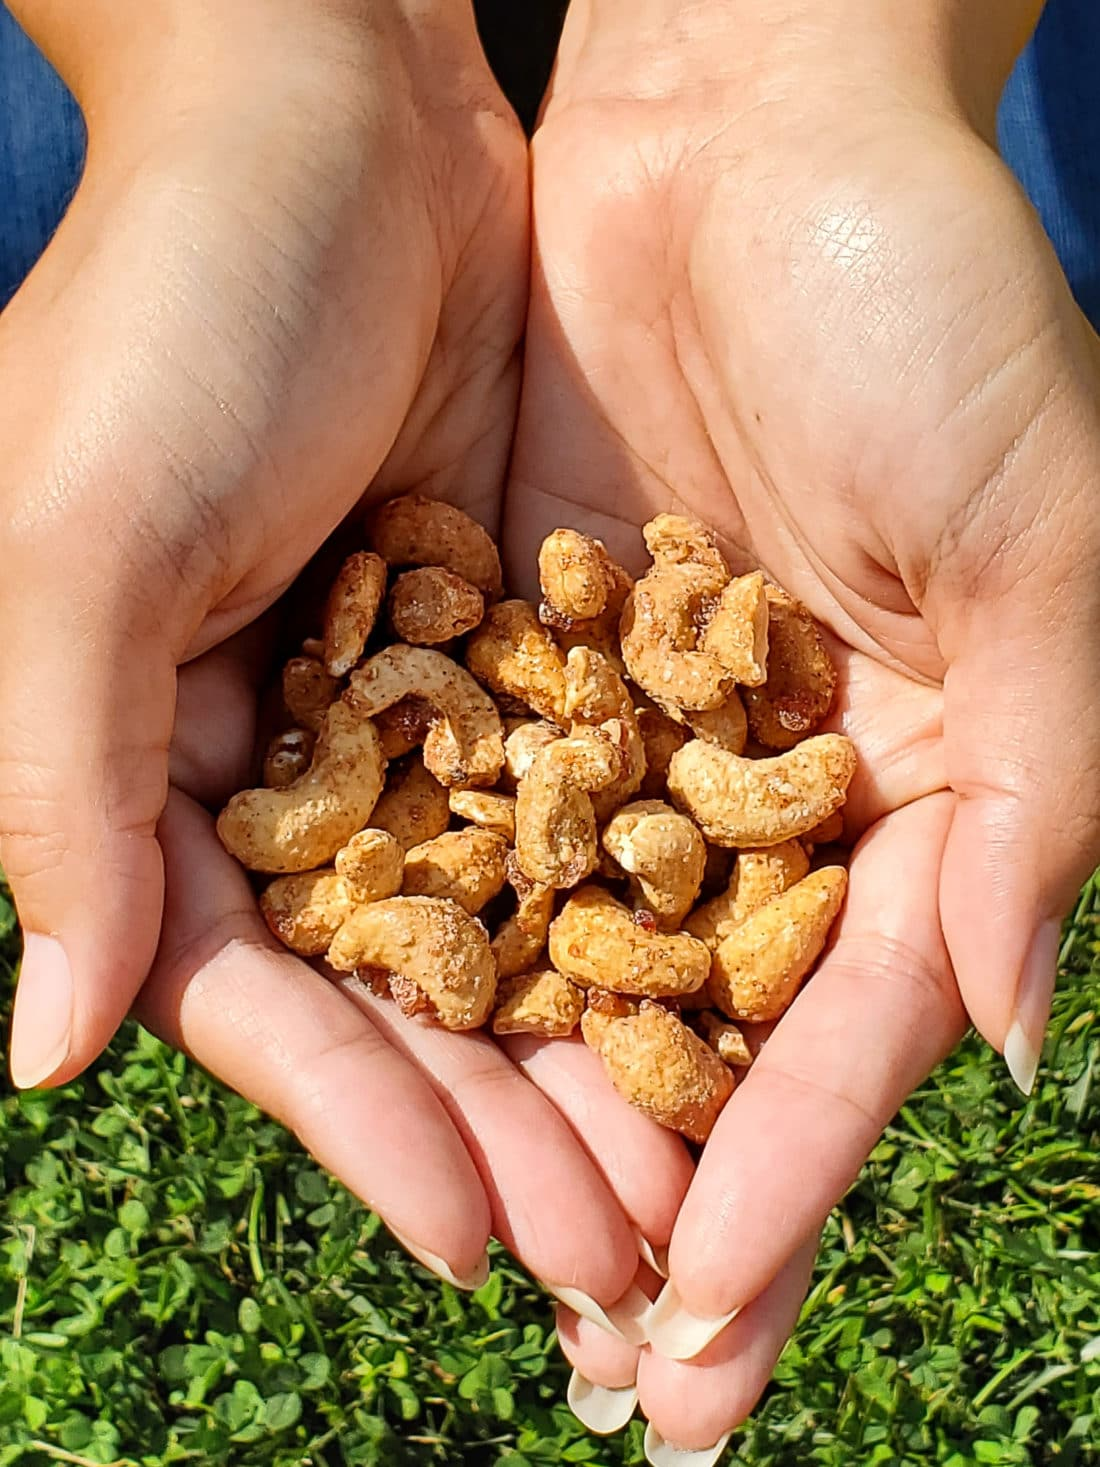 Sahale Snacks Pomegrante Vanilla Flavored Cashews Closeup. Snack easy with Sahale snacks, they are the delicious option that fit seemlessly into your everyday lives. Sahale Snacks use unique combinations and layers of flavor with real ingredients to elevate your everyday snacking experience.